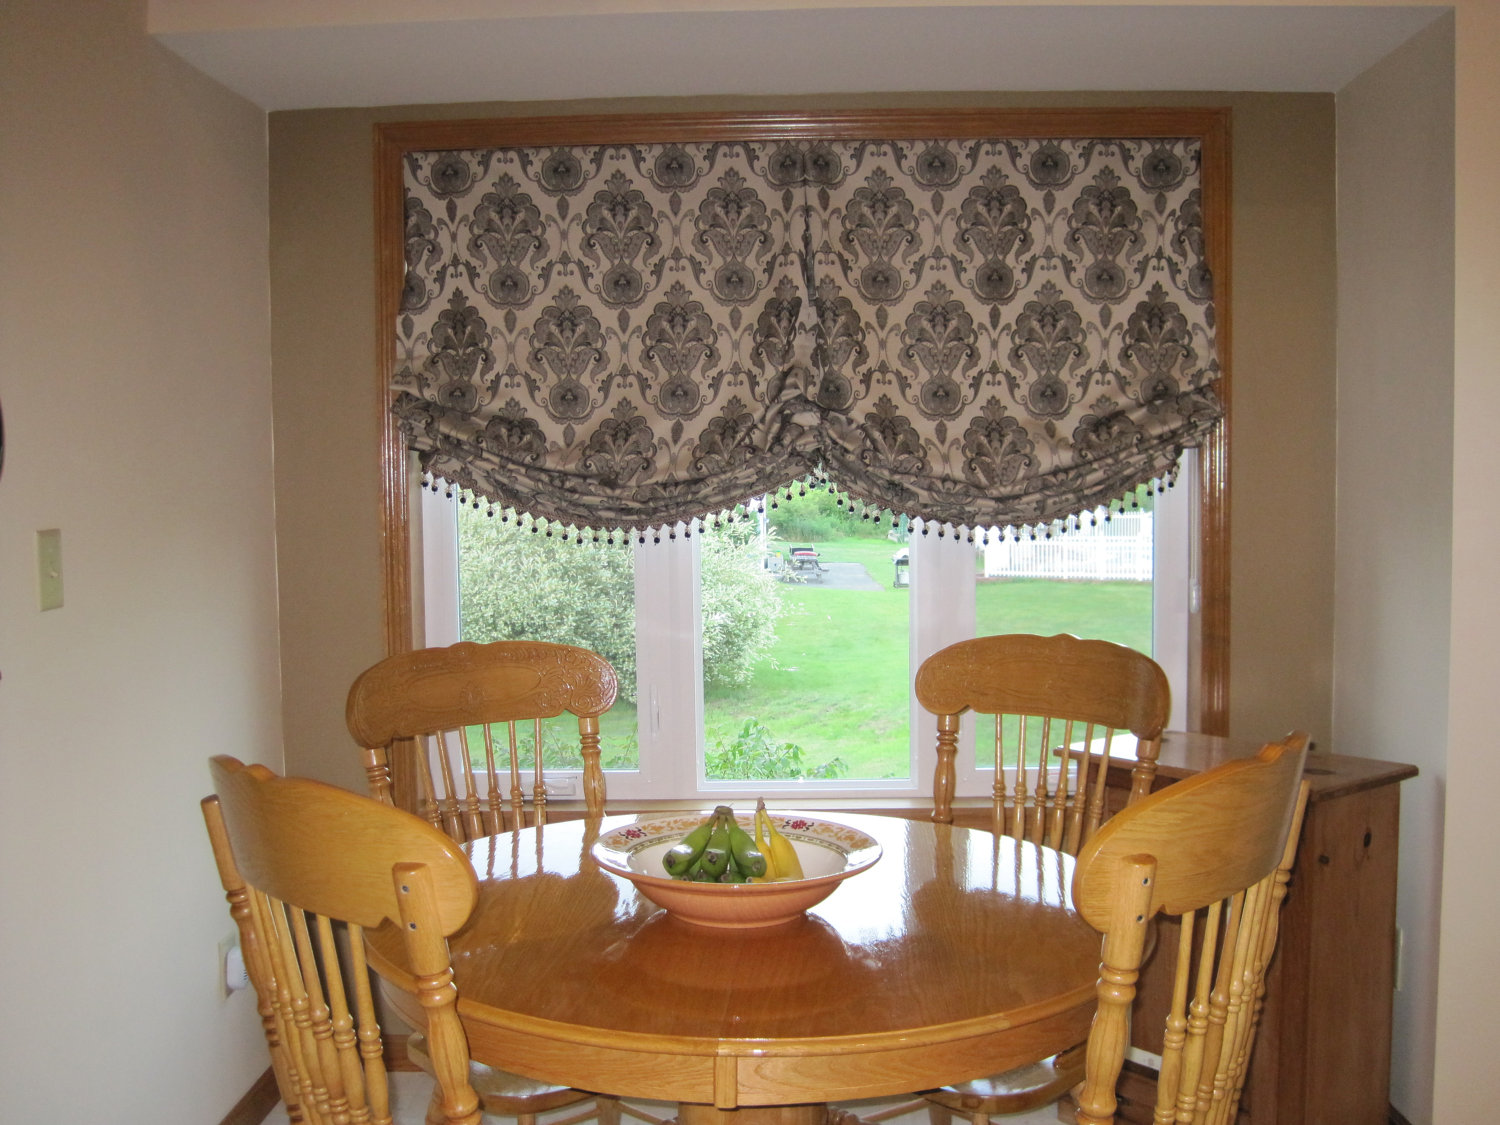 Bathroom Valance Ideas Installing Outside Mount Roman Shades At Ease Homesfeed